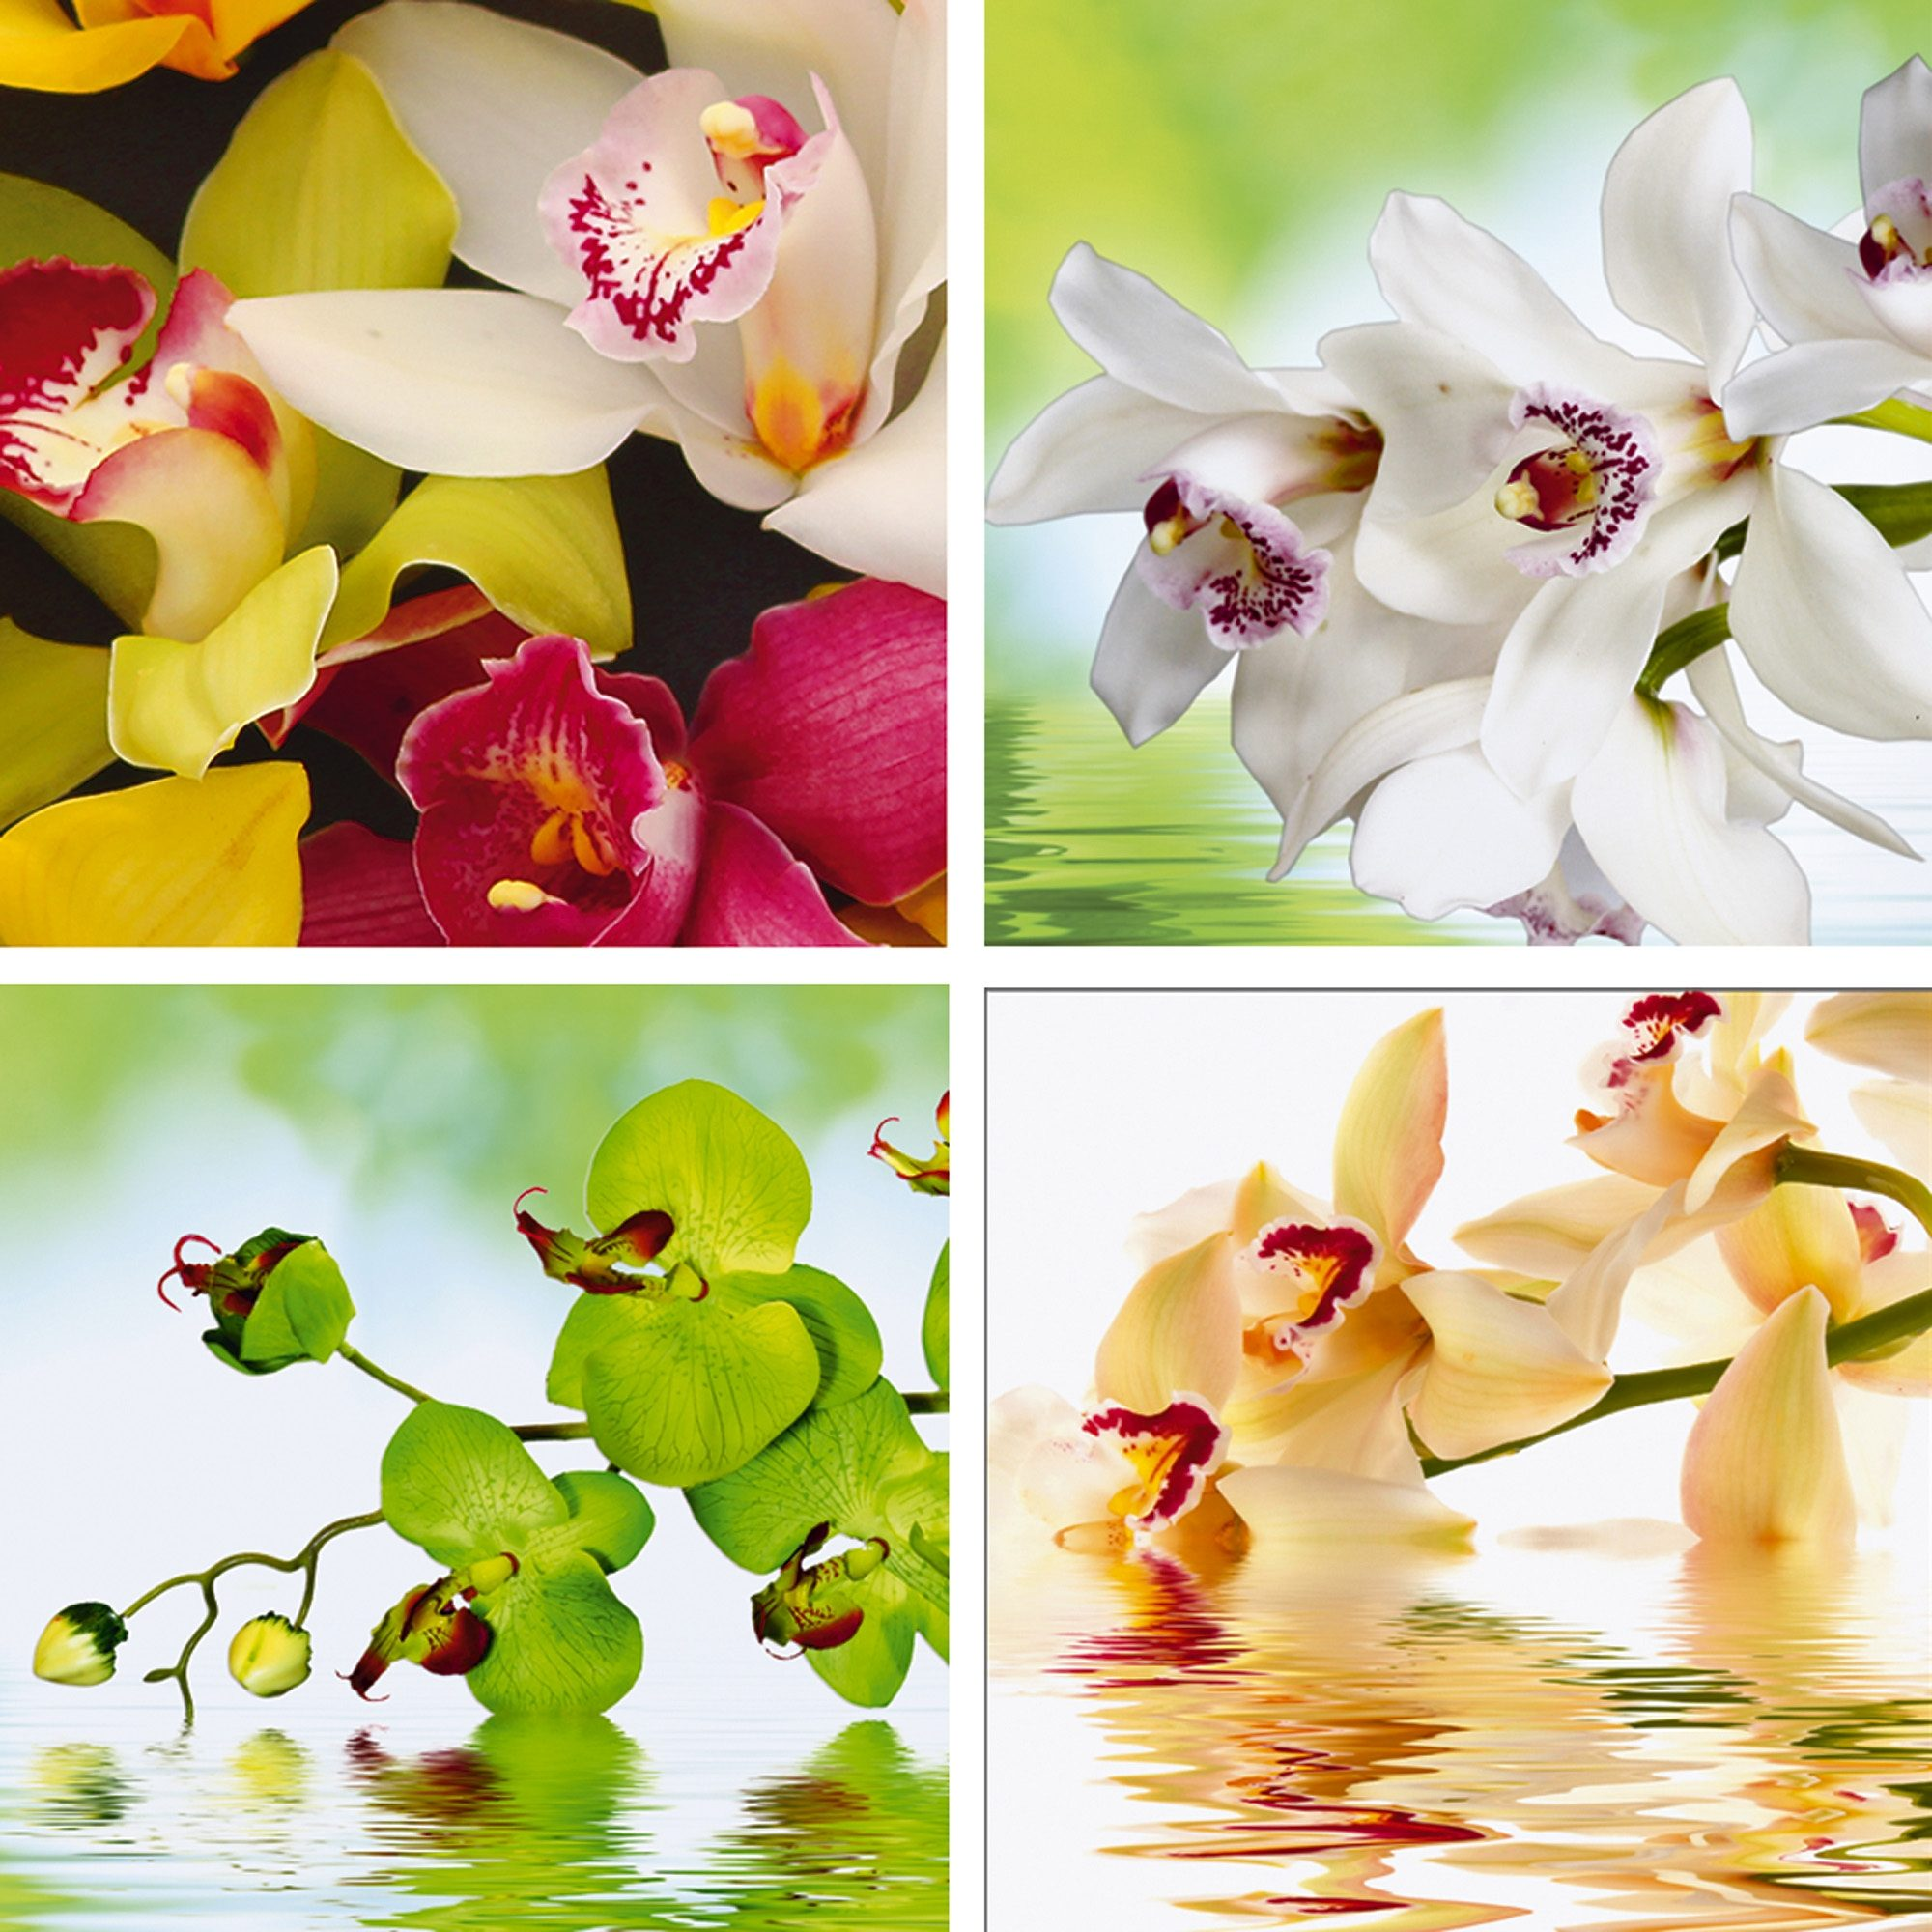 Leinwandbild, Home affaire, »Meer von Orchideen«, 4er Set